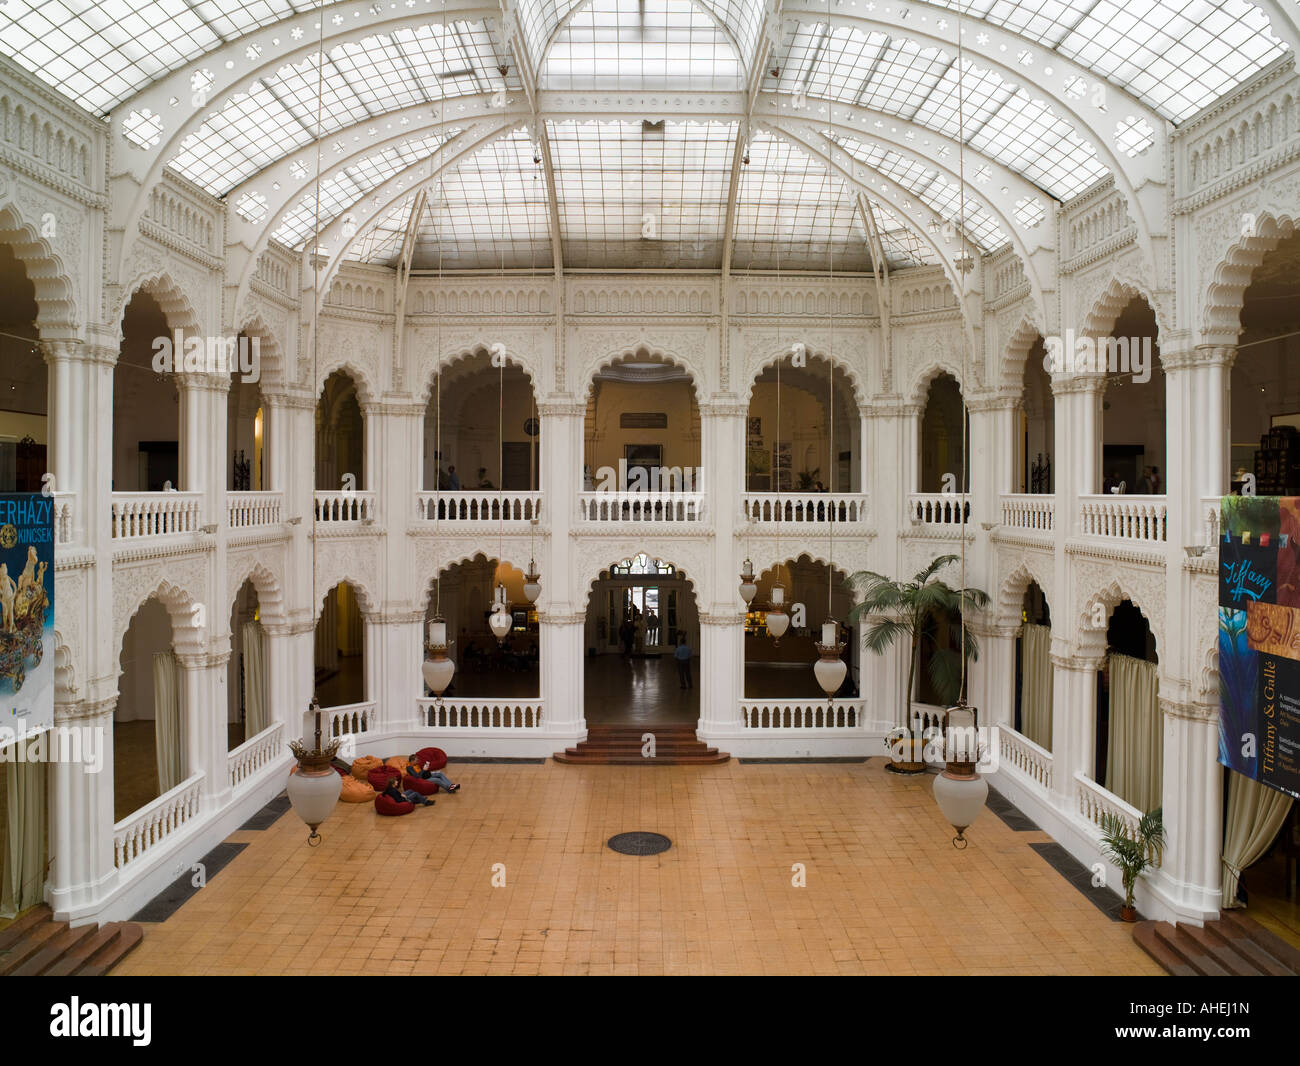 Interior Courtyard Museum Of Applied Arts Budapest Hungary Stock Photo Alamy